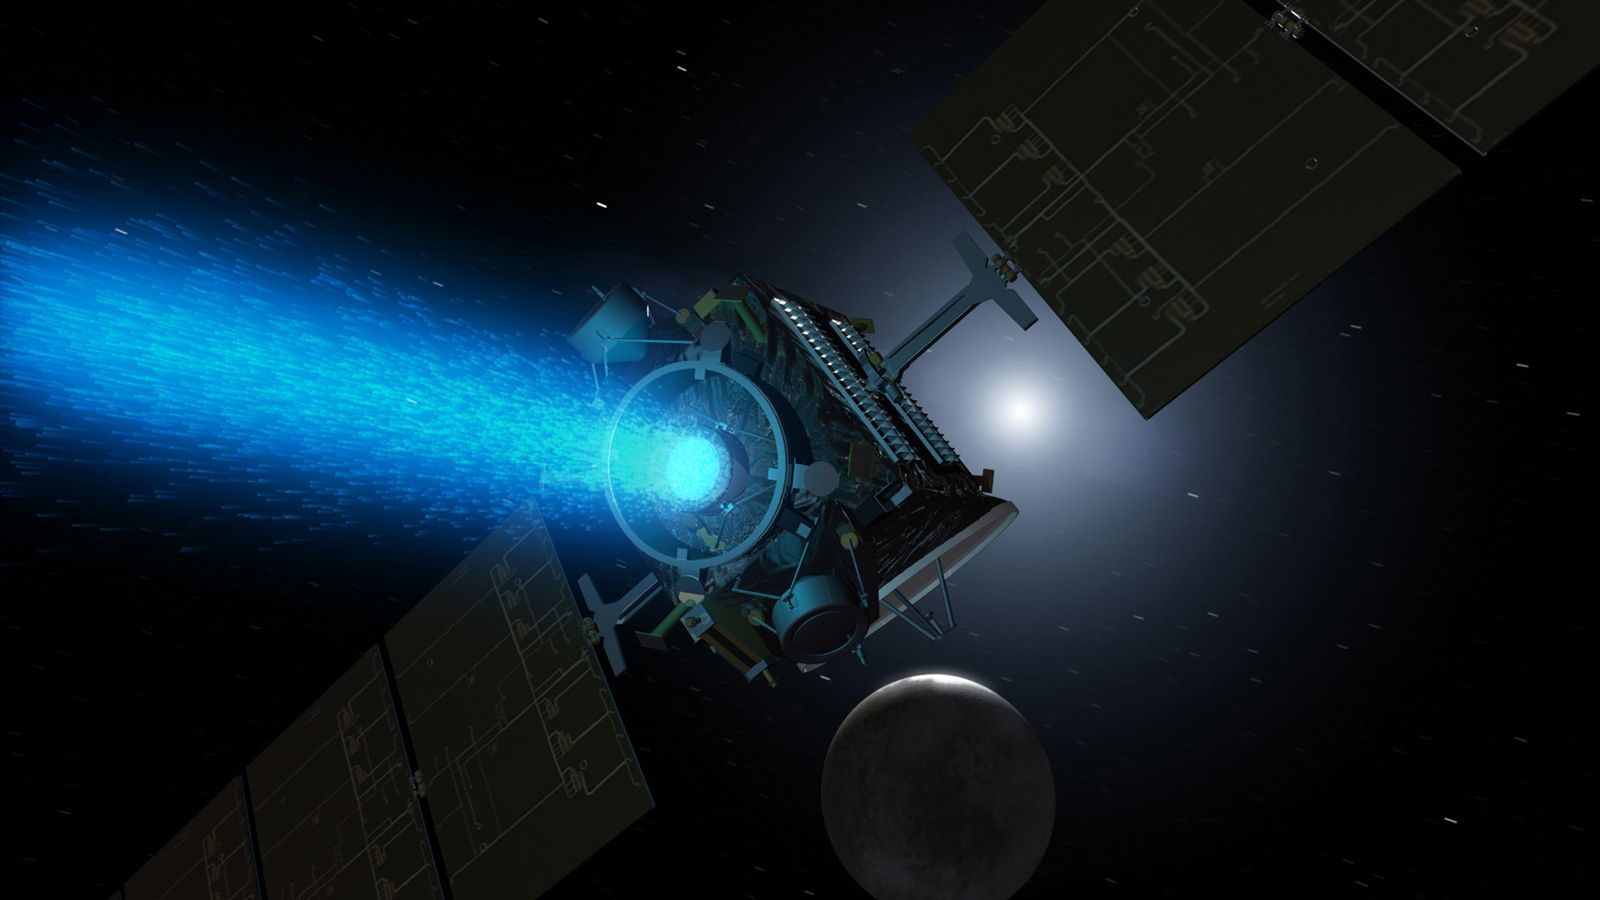 The picture of satellite with visible working thruster exhaust nozzle